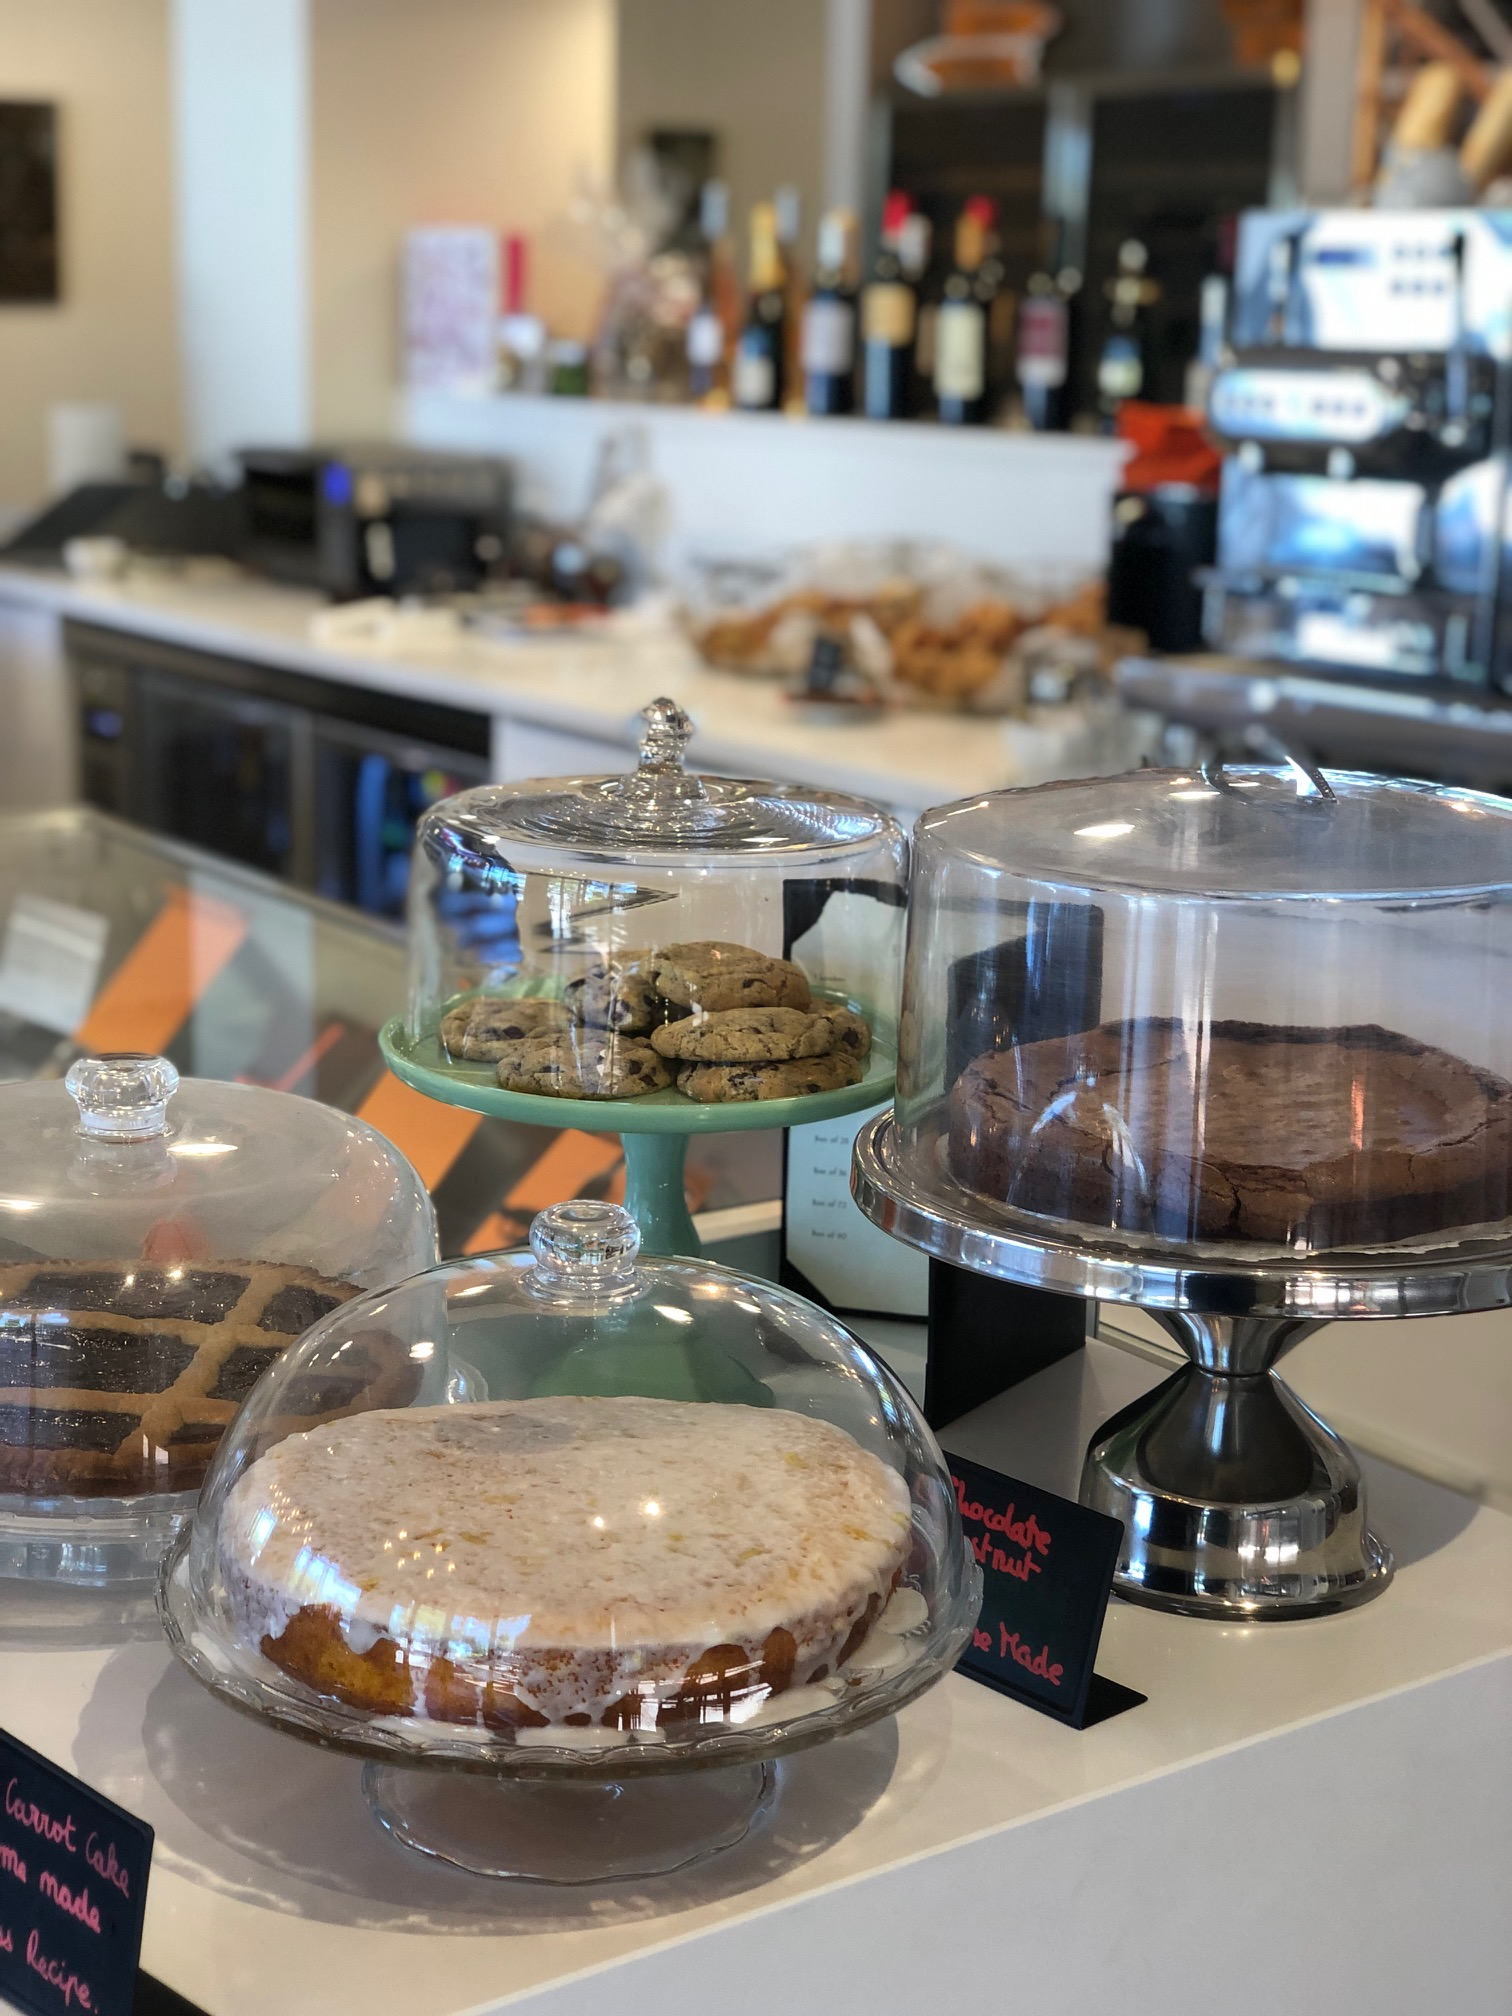 Some of the best French cakes and pastries in Austin.